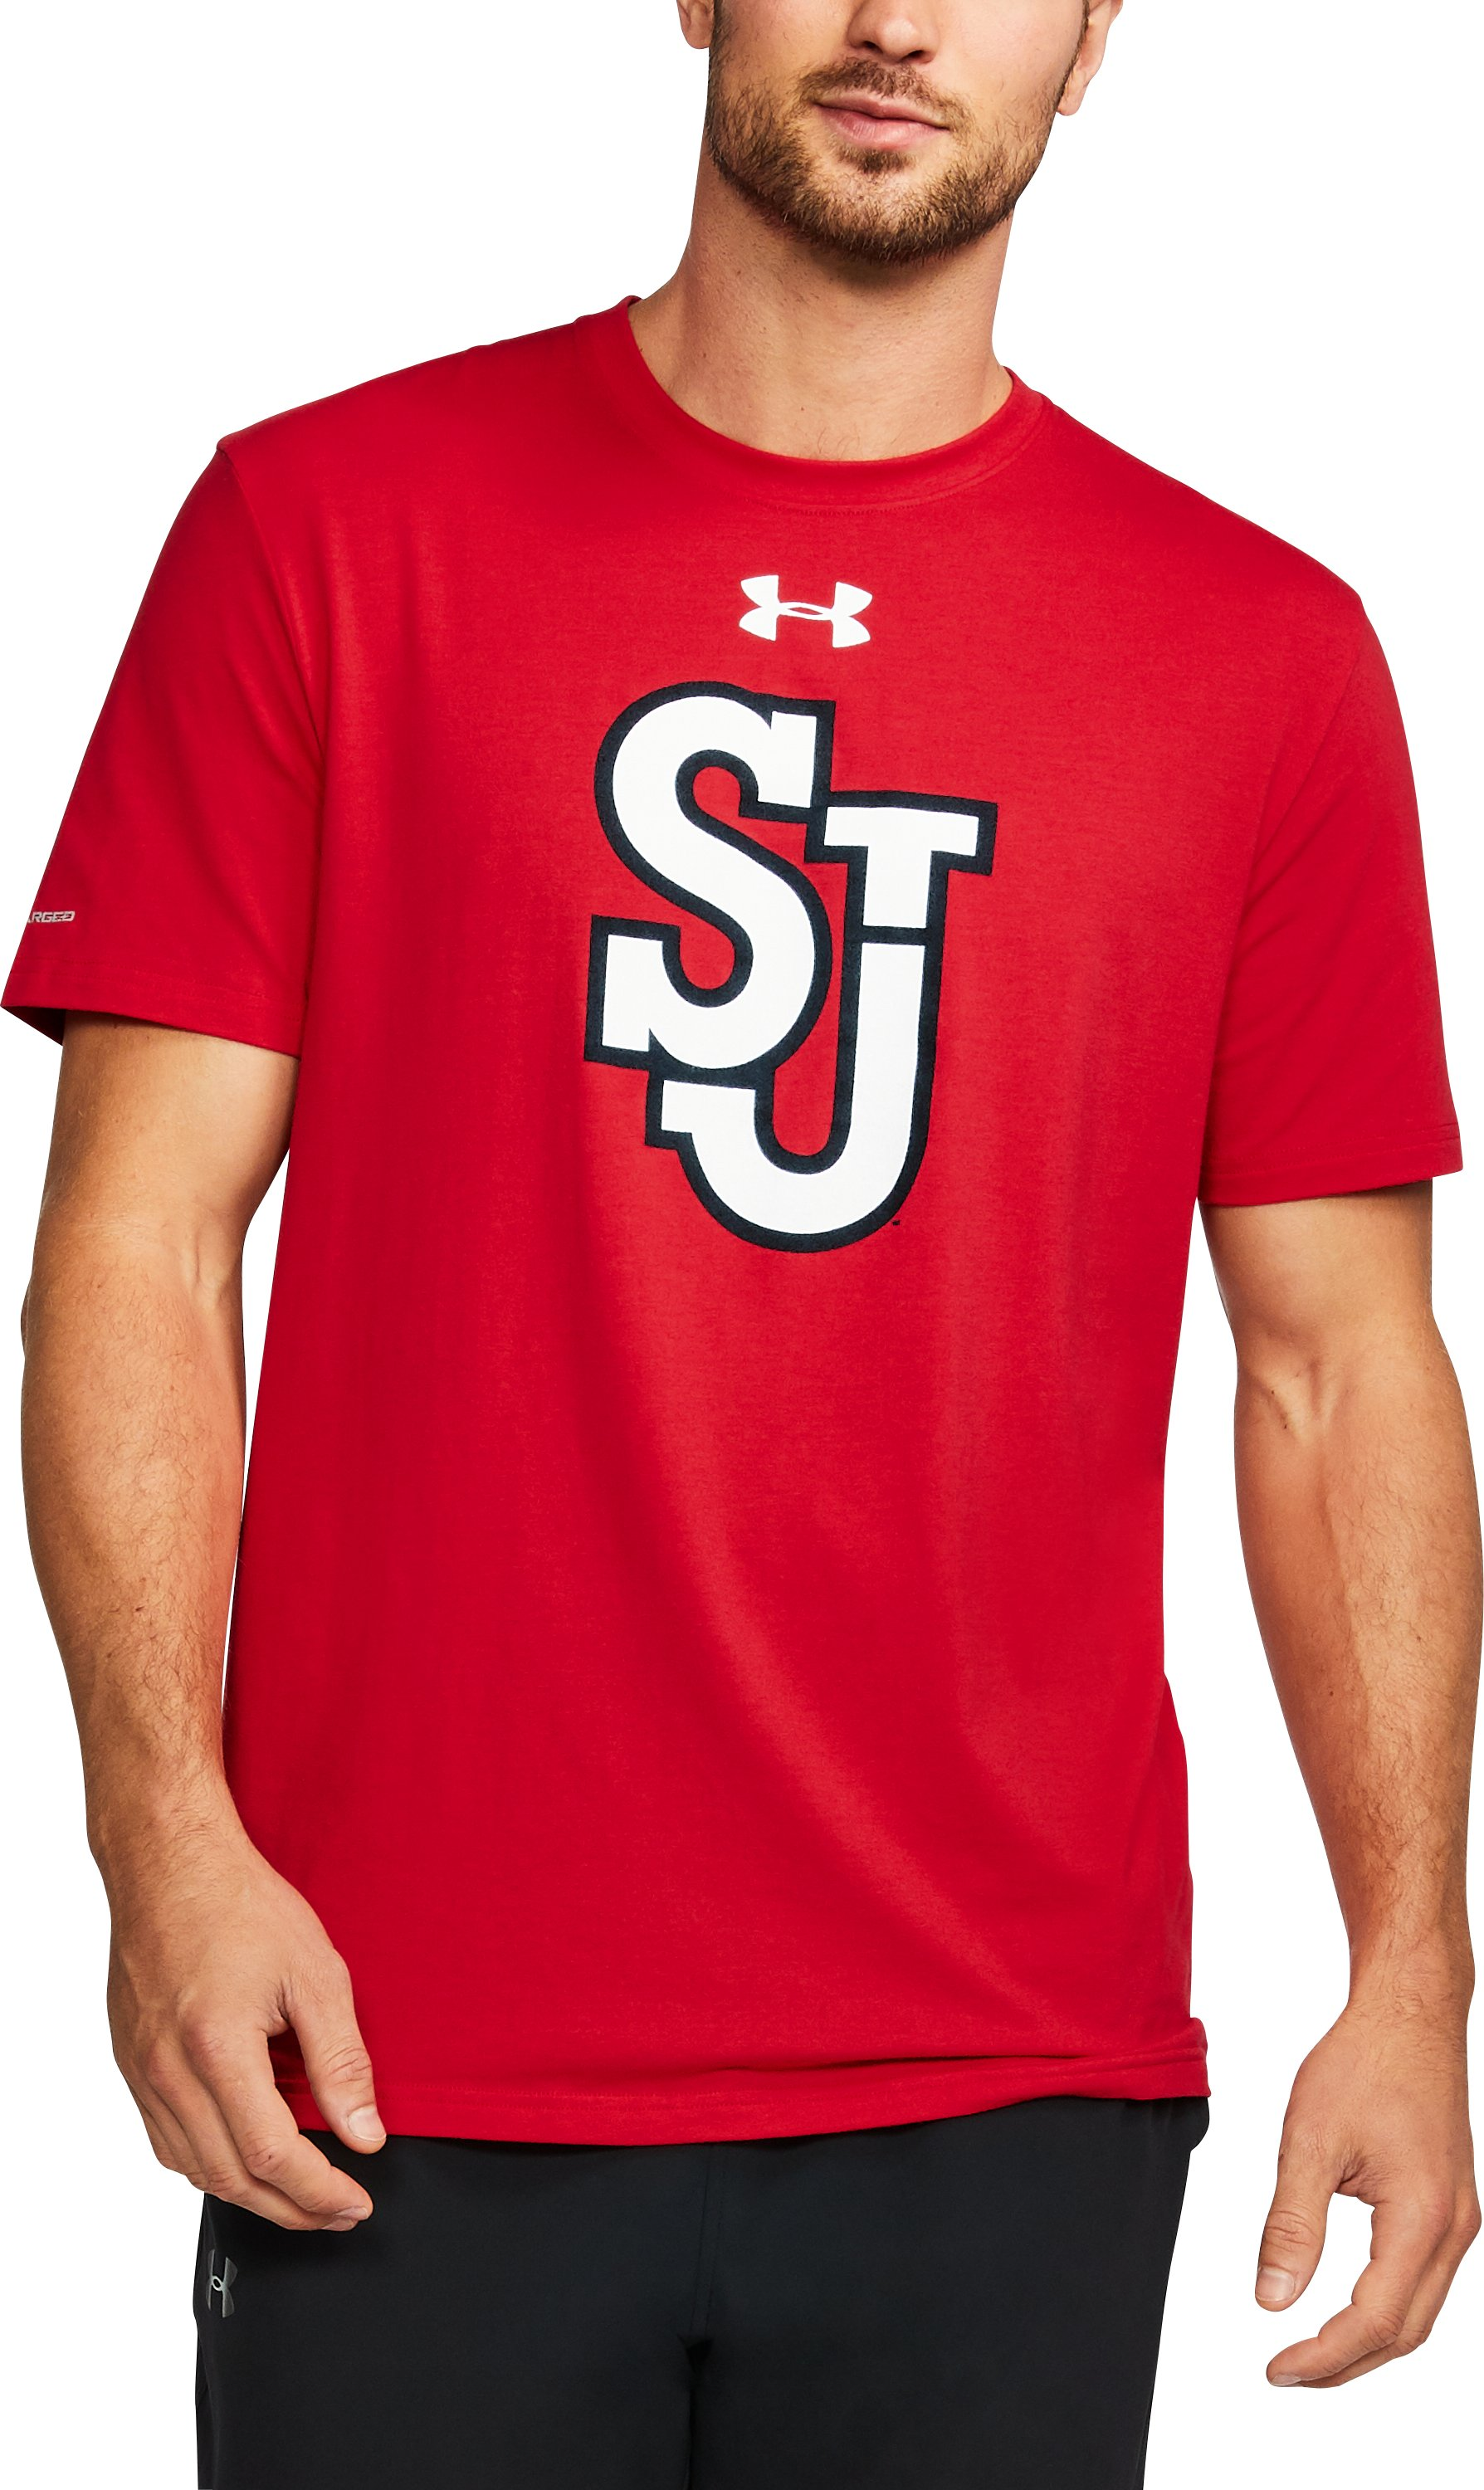 Men's St. John's Charged Cotton® T-Shirt, Red,